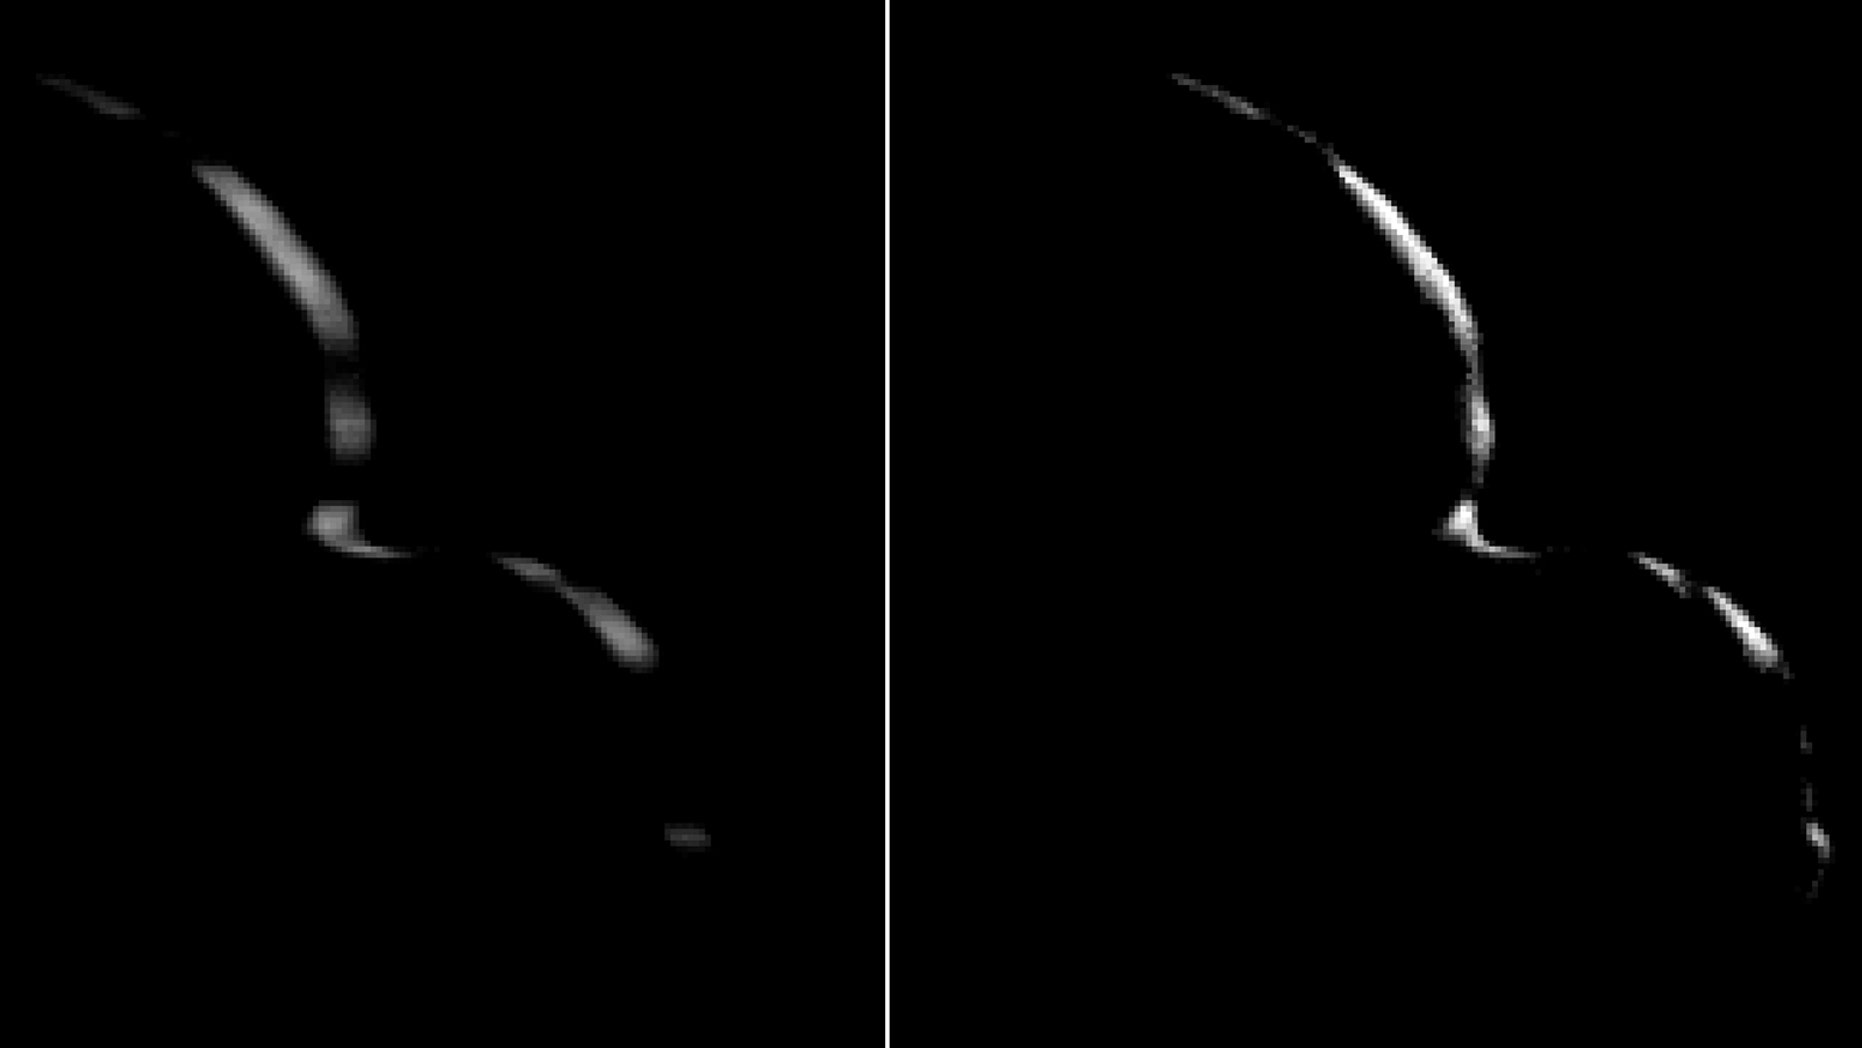 New Horizons took this image of Ultima Thule on Jan. 1, 2019, when the NASA spacecraft was 5,494 miles (8,862 kilometers) beyond it. The image to the left is an